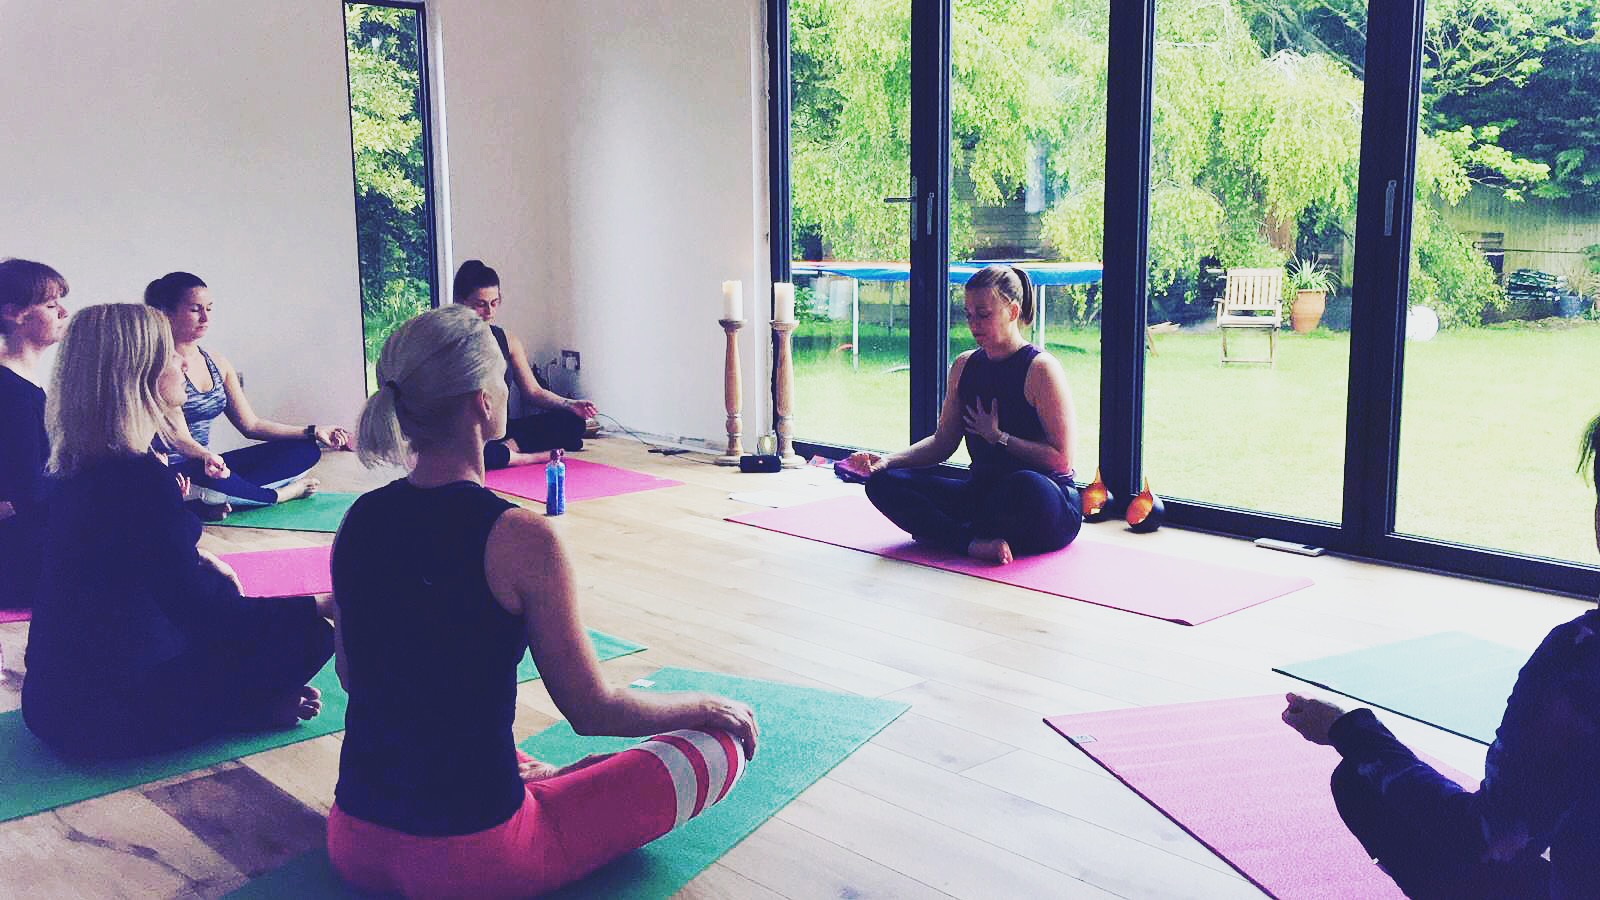 Benefit of yoga and breathe work